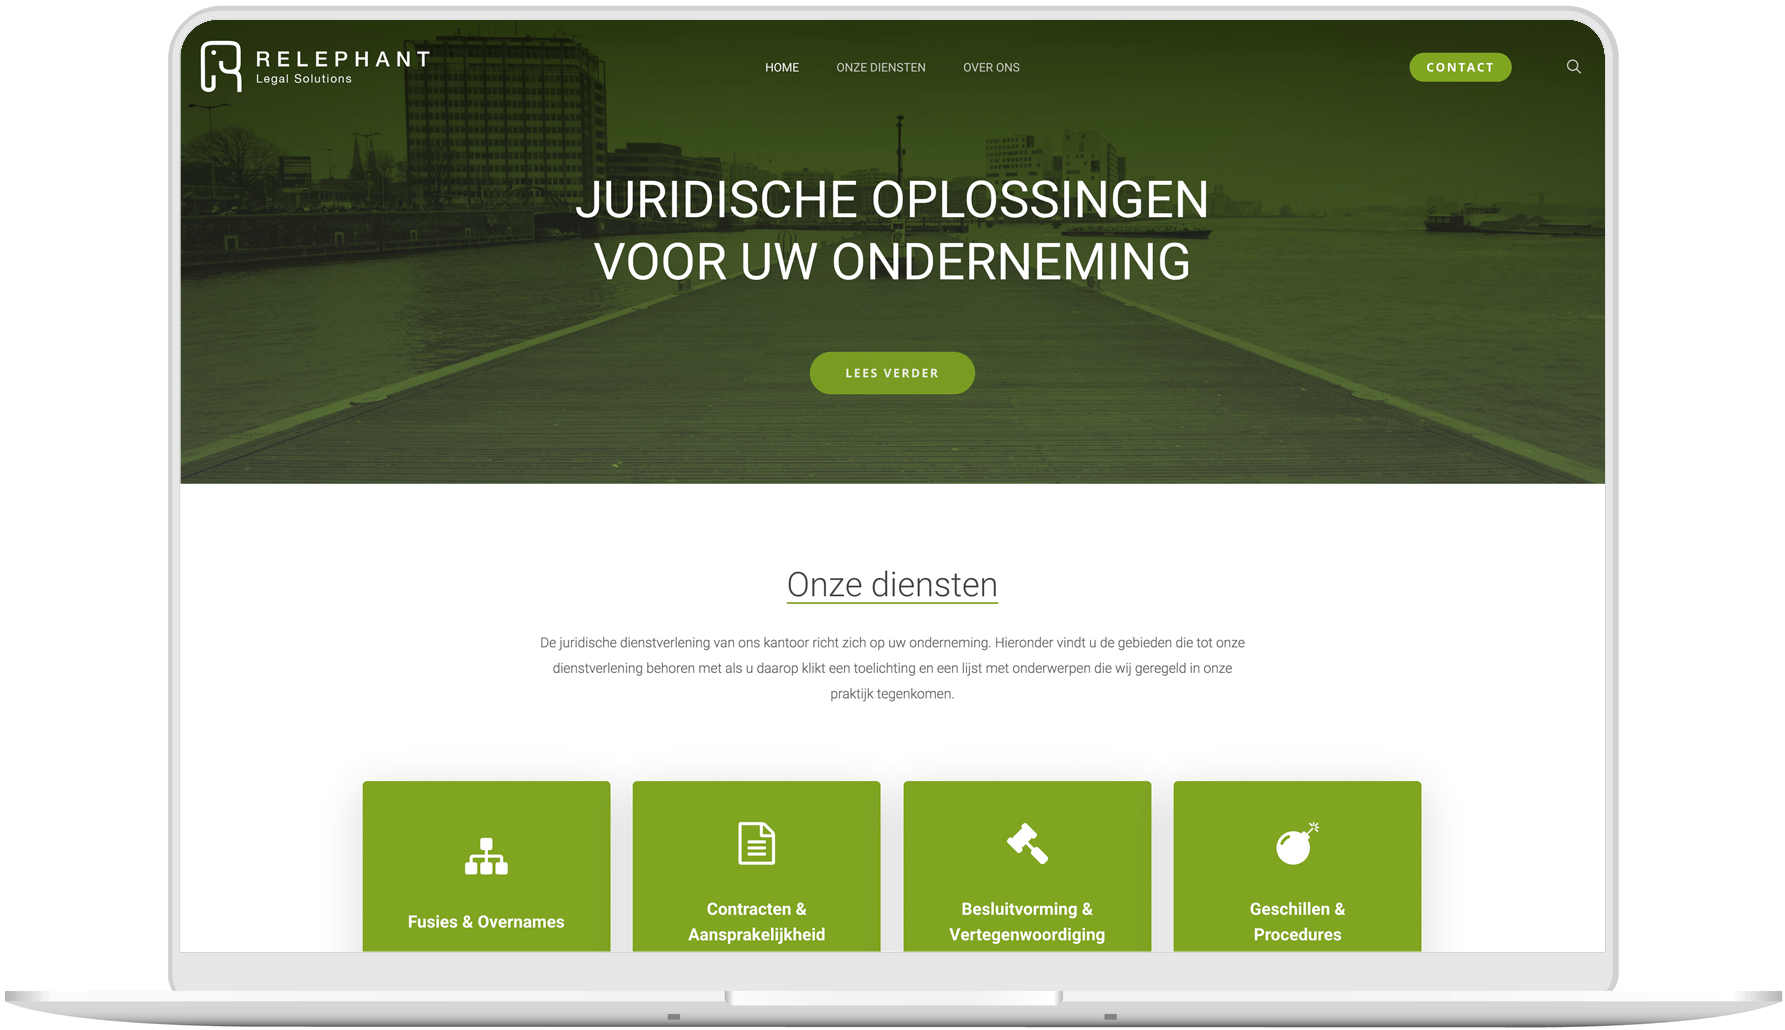 Advocatenkantoor website laten maken - Relephant Legal Solutions